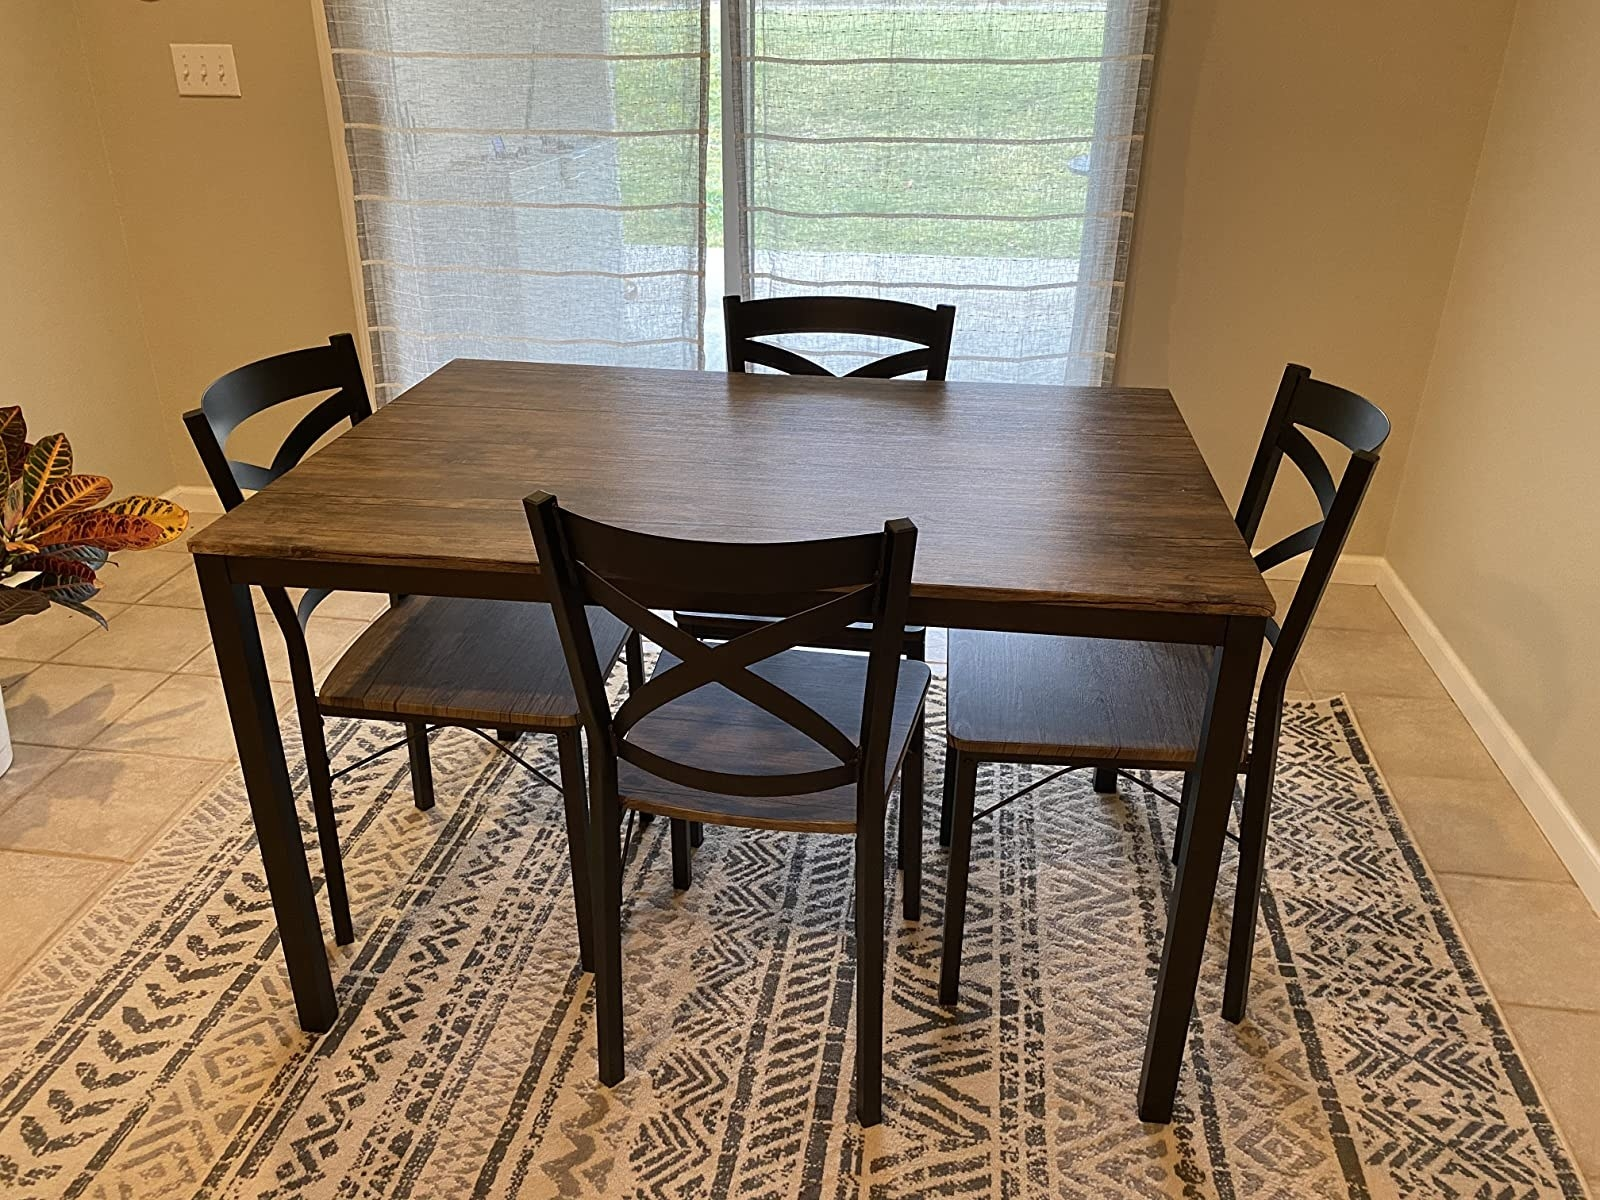 The dinning set with a table and four chairs that each have wood surfaces and black metal frames